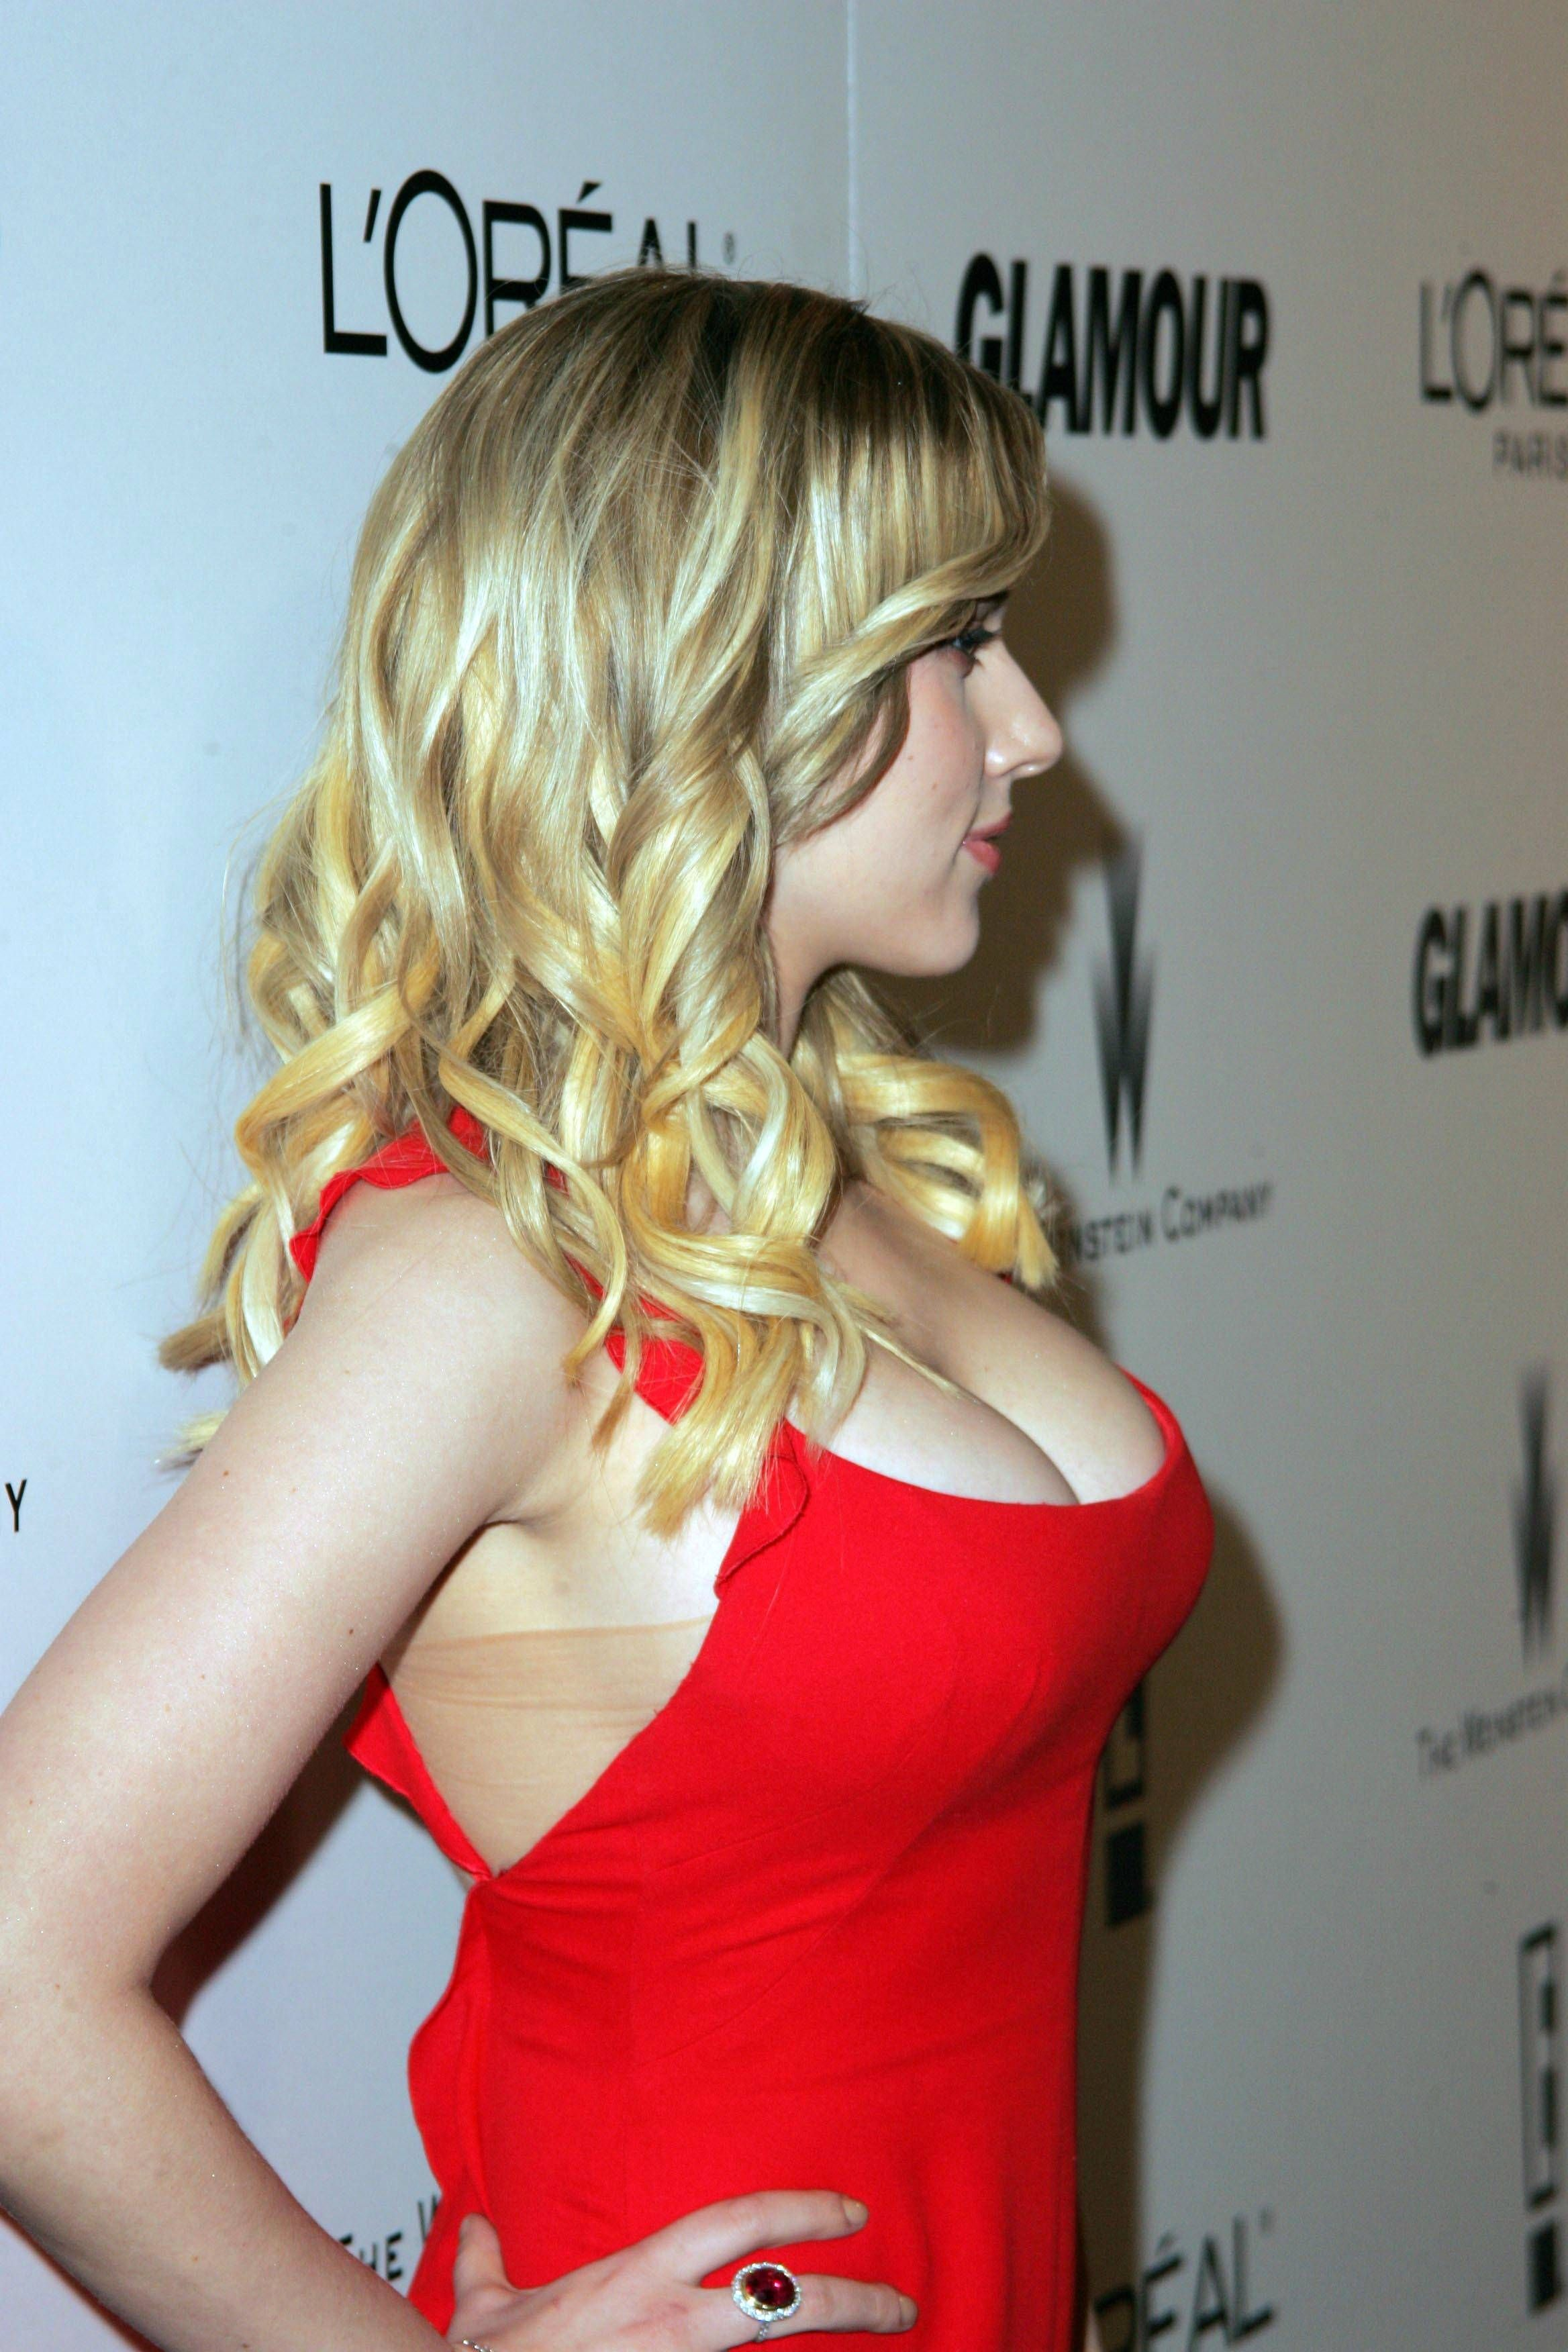 Discussion on this topic: Scarlett Johansson Reveals Her Body Hang Ups, , scarlett-johansson-reveals-her-body-hang-ups/